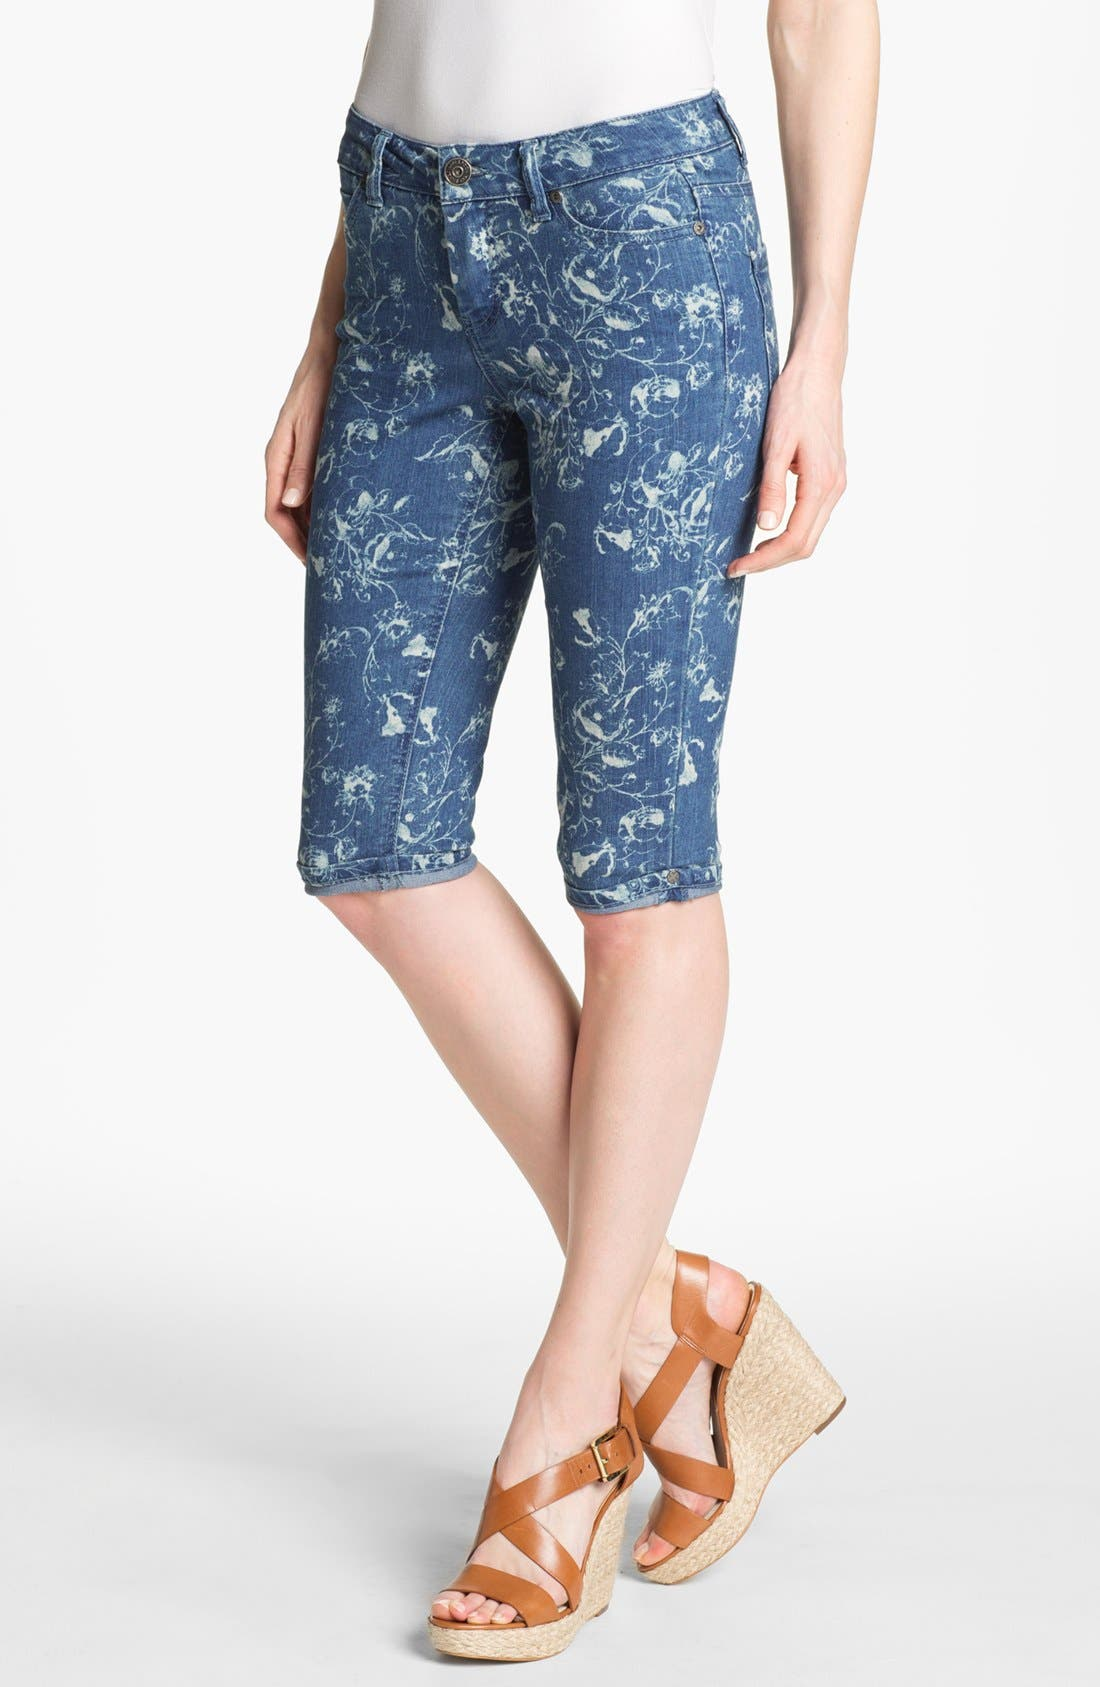 Alternate Image 1 Selected - Liverpool Jeans Company 'Julia' Short Capri Stretch Jeans